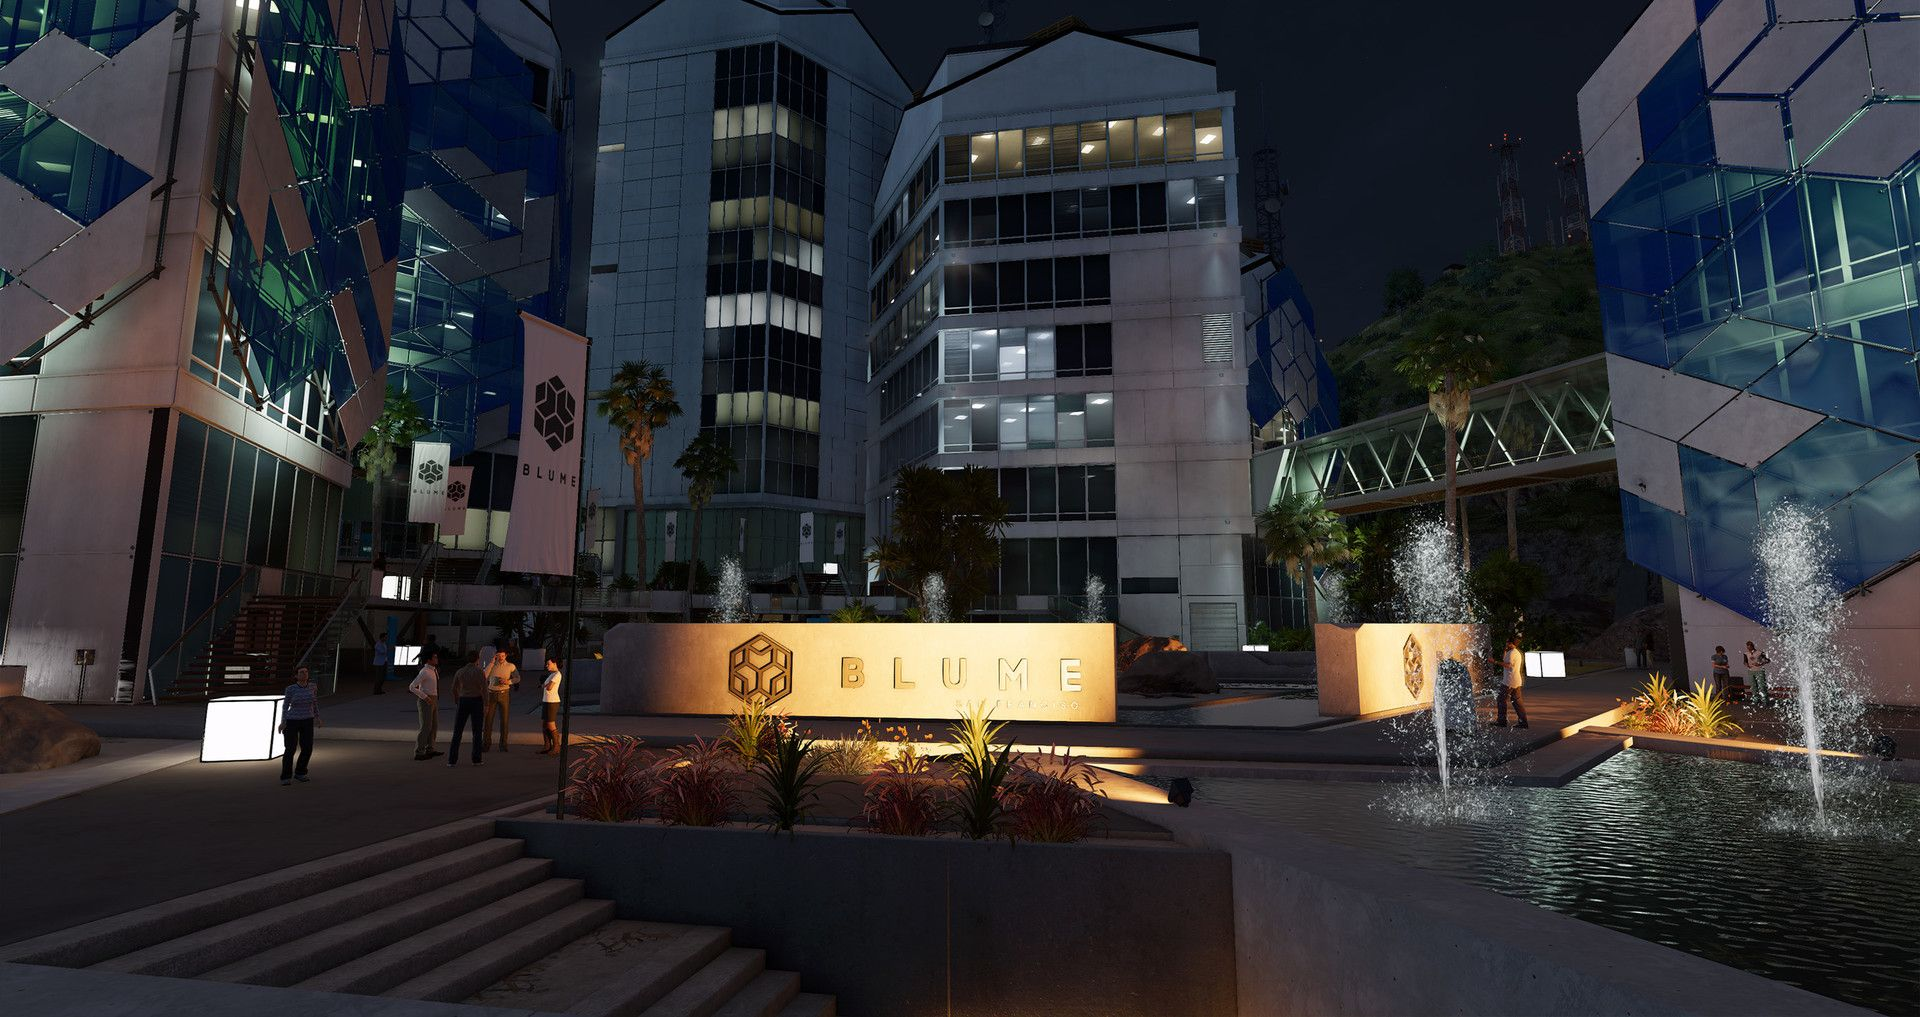 ArtStation   Watch Dogs 2 : Blume Exterior Campus, Guillaume Beland